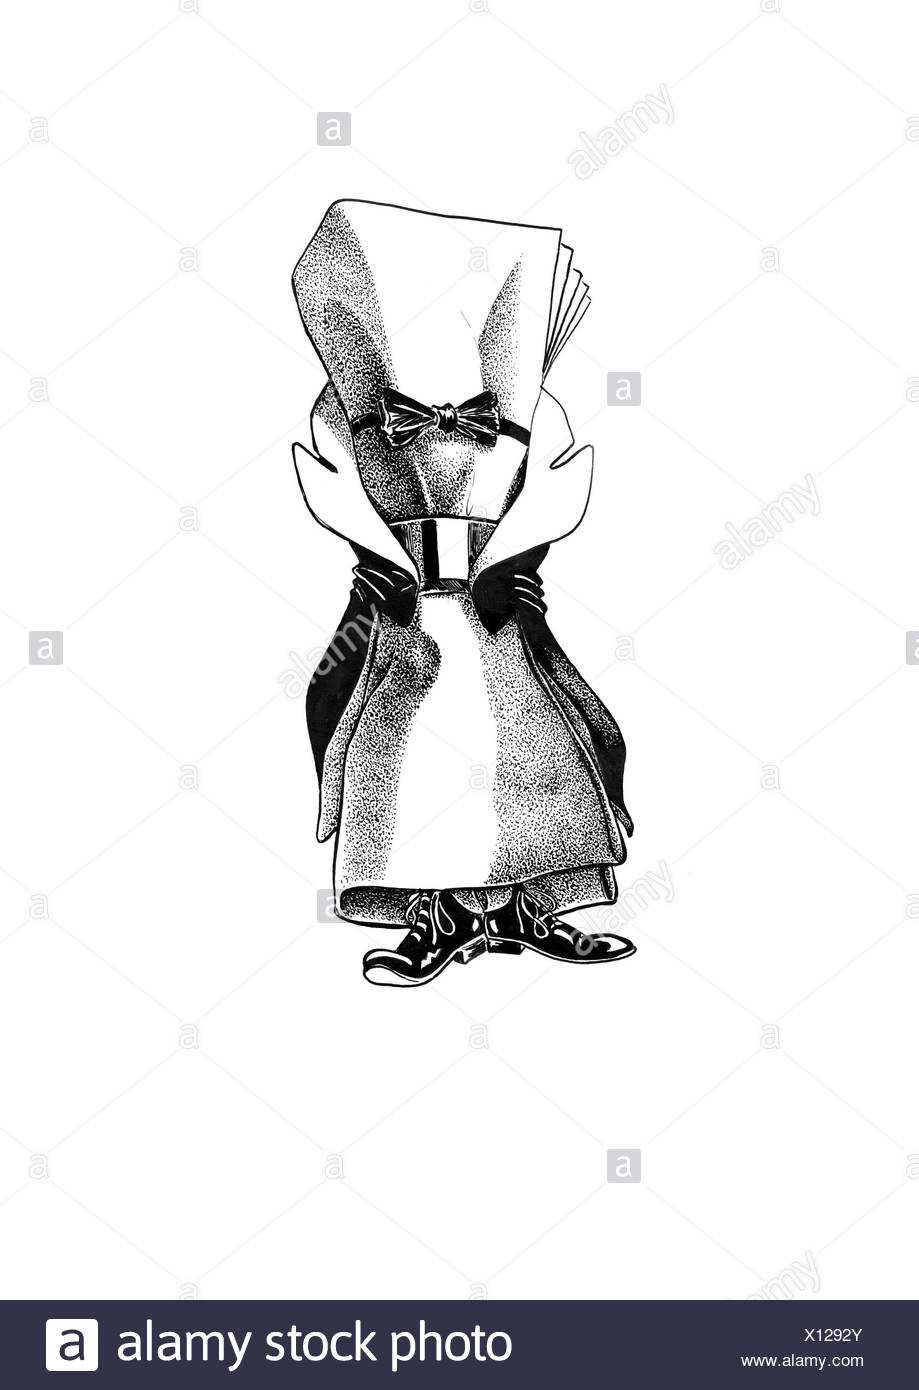 Napkin with ring in tailcoat and bow-tie - Stock Image